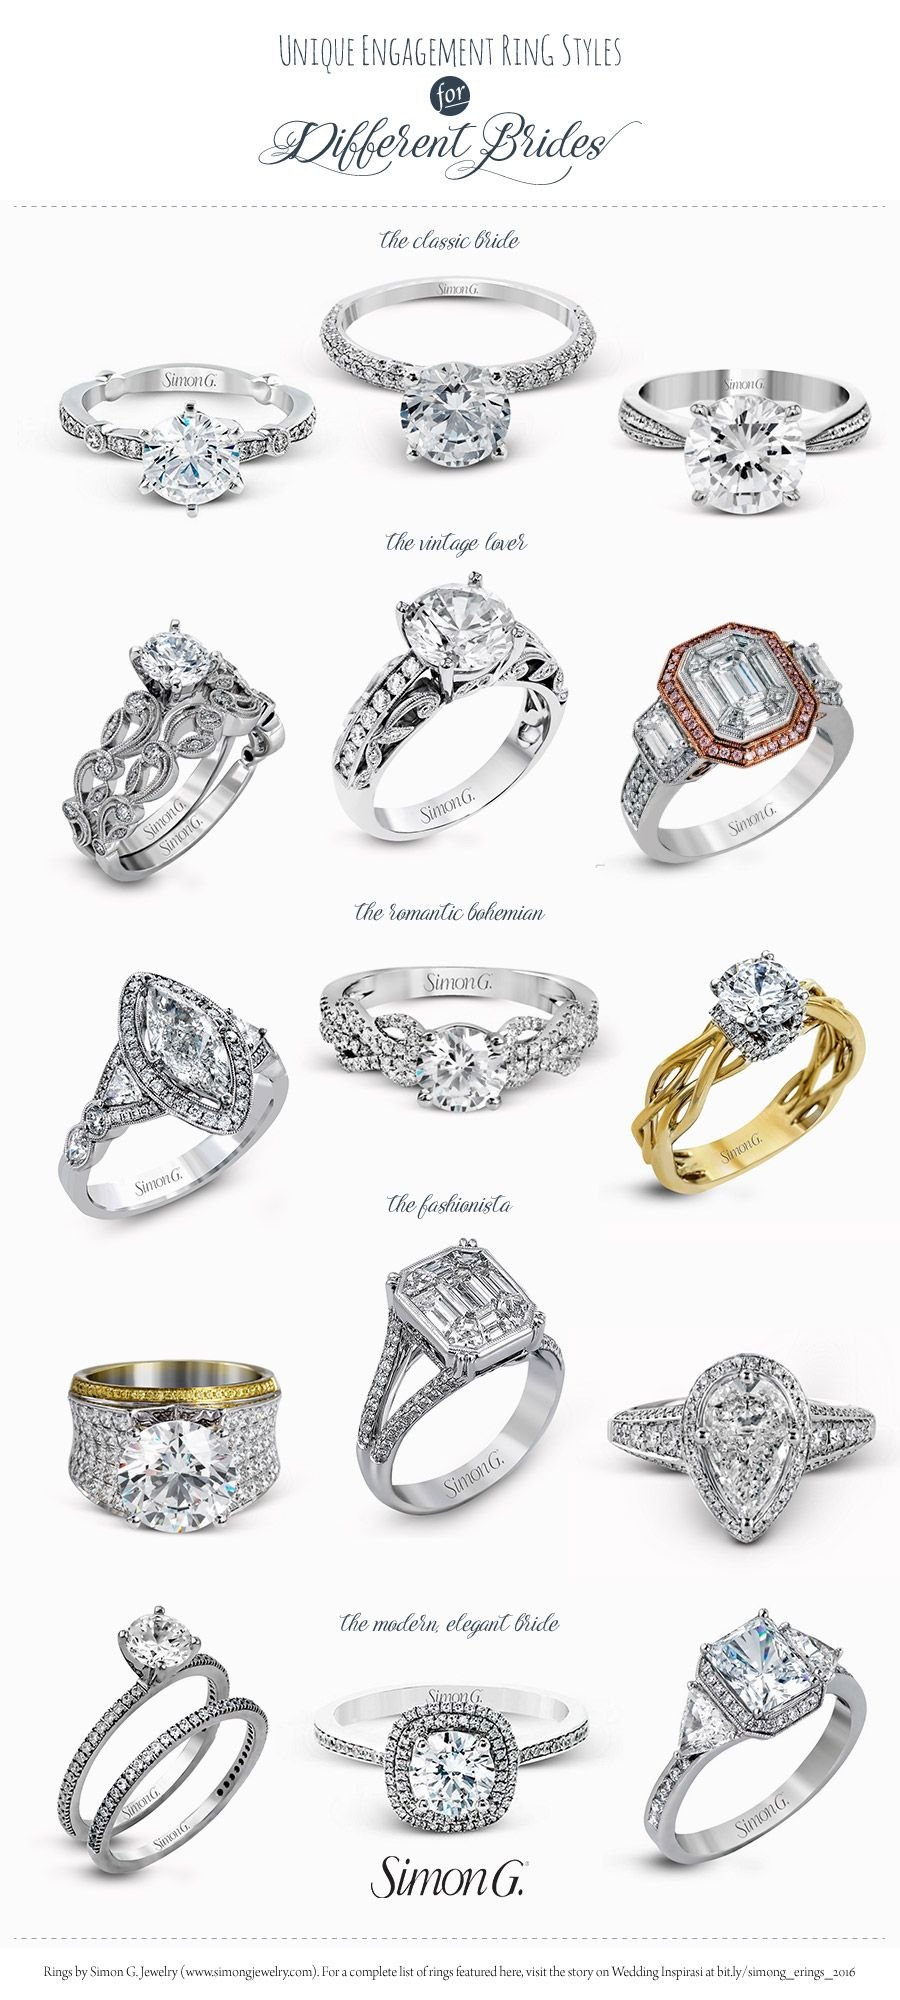 simon g engagement ring styles for every bridal